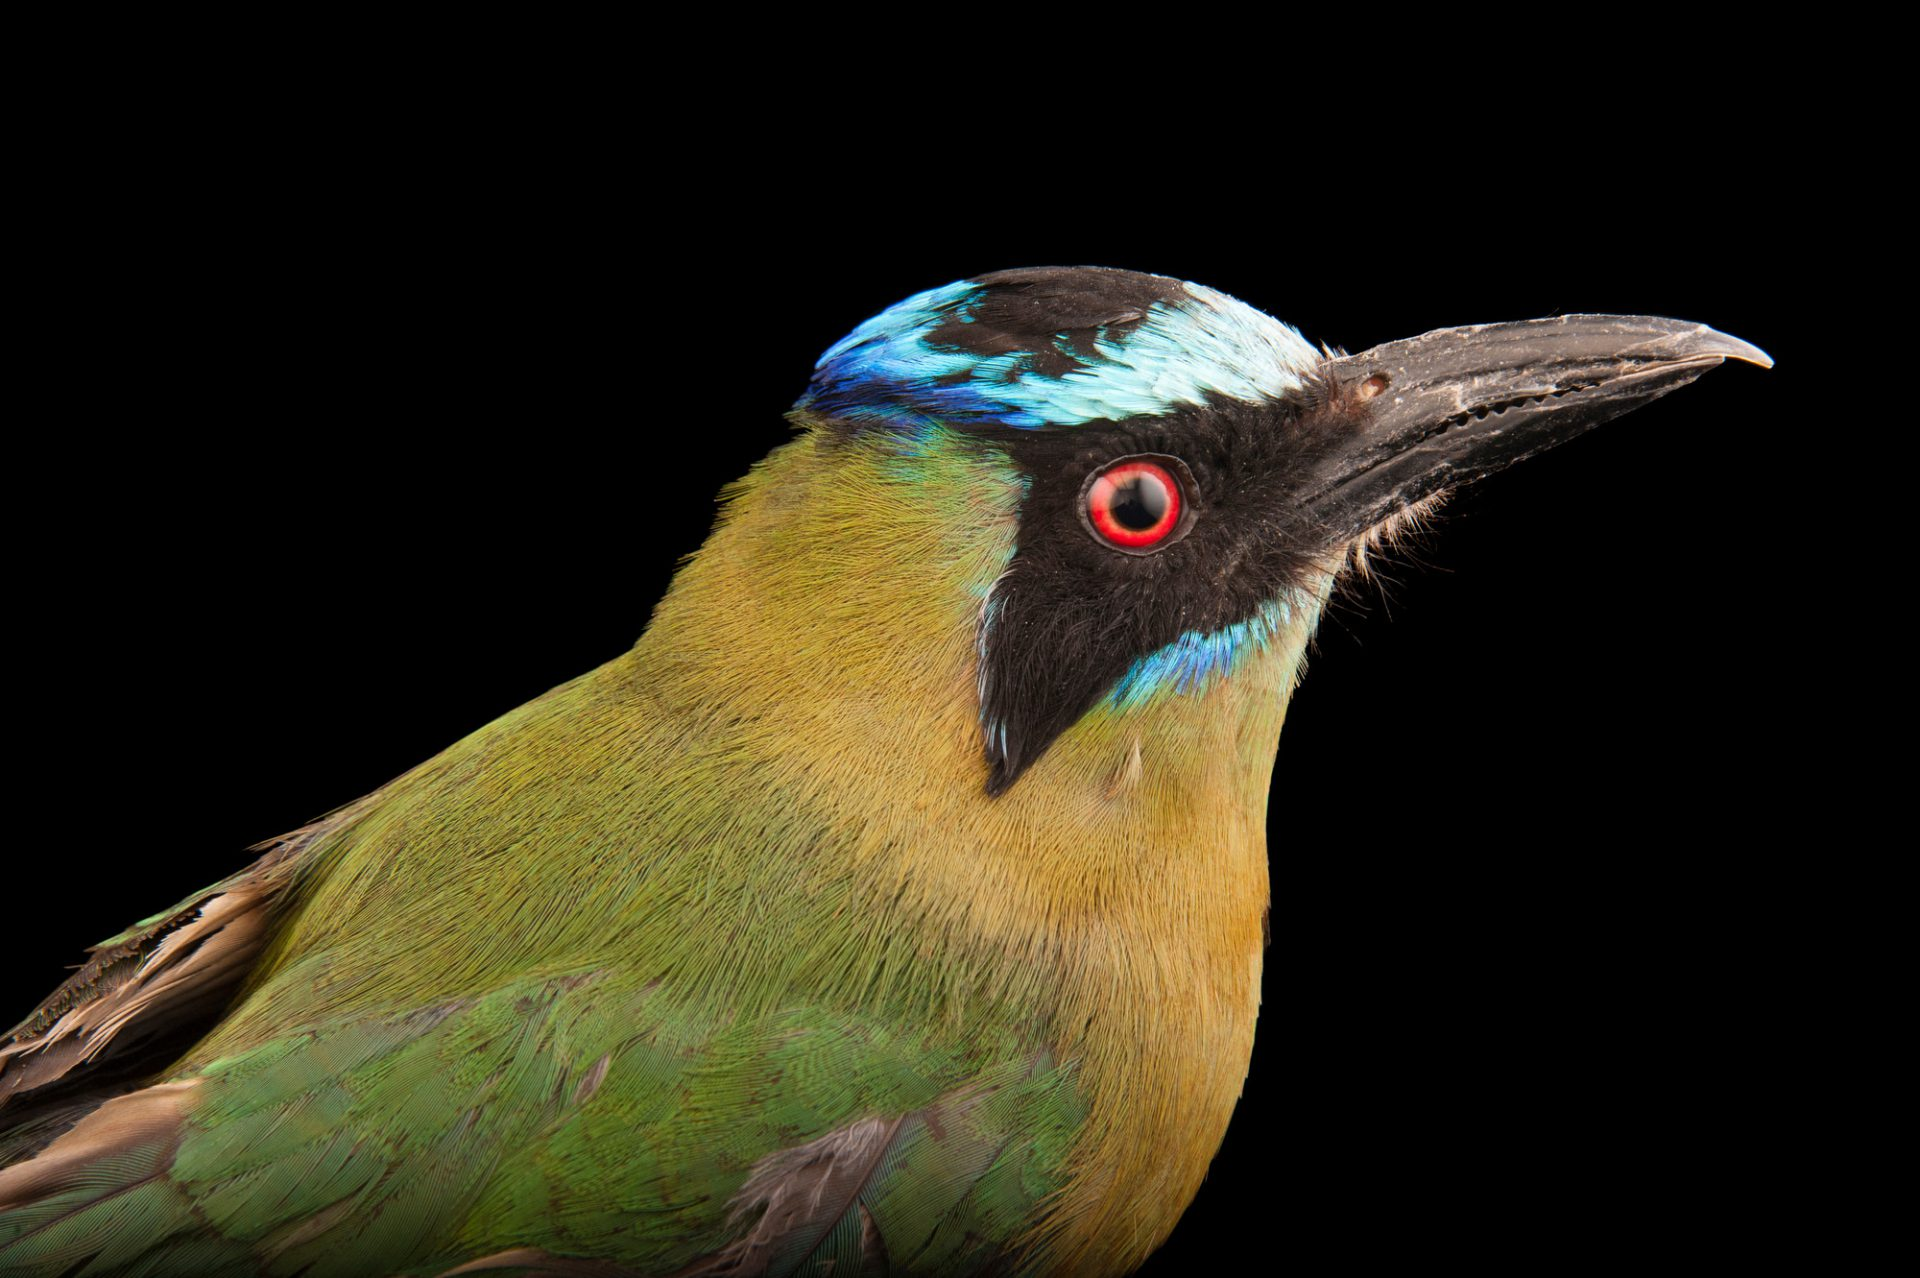 Picture of a blue-crowned motmot (Momotus momota) at Omaha's Henry Doorly Zoo and Aquarium.